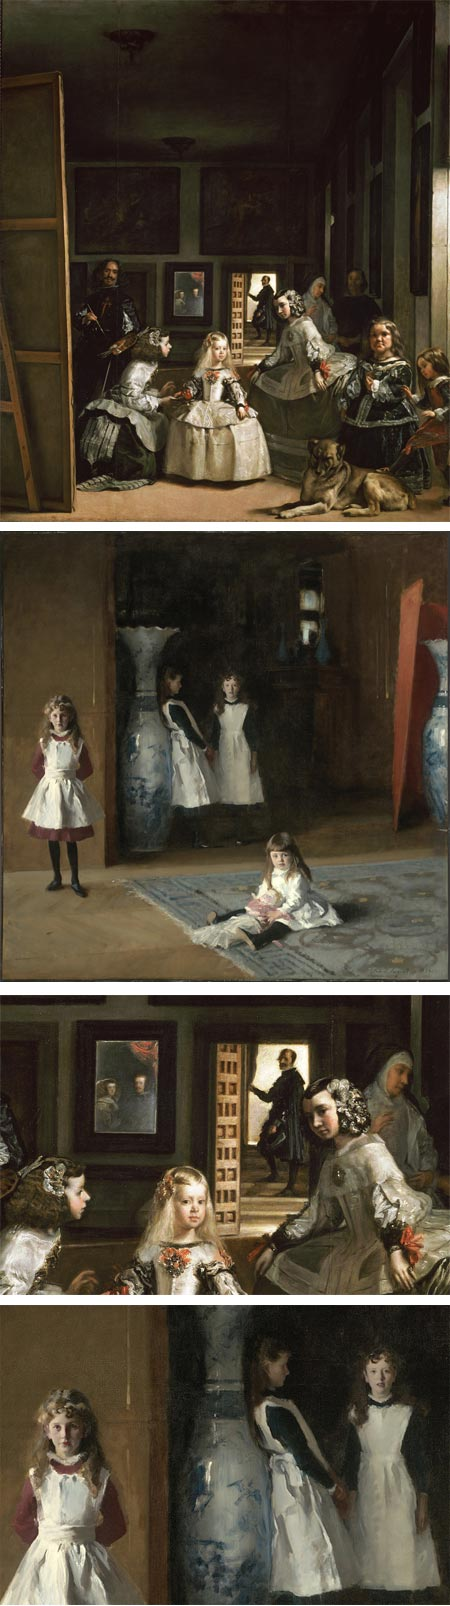 Sargent and Velazquez